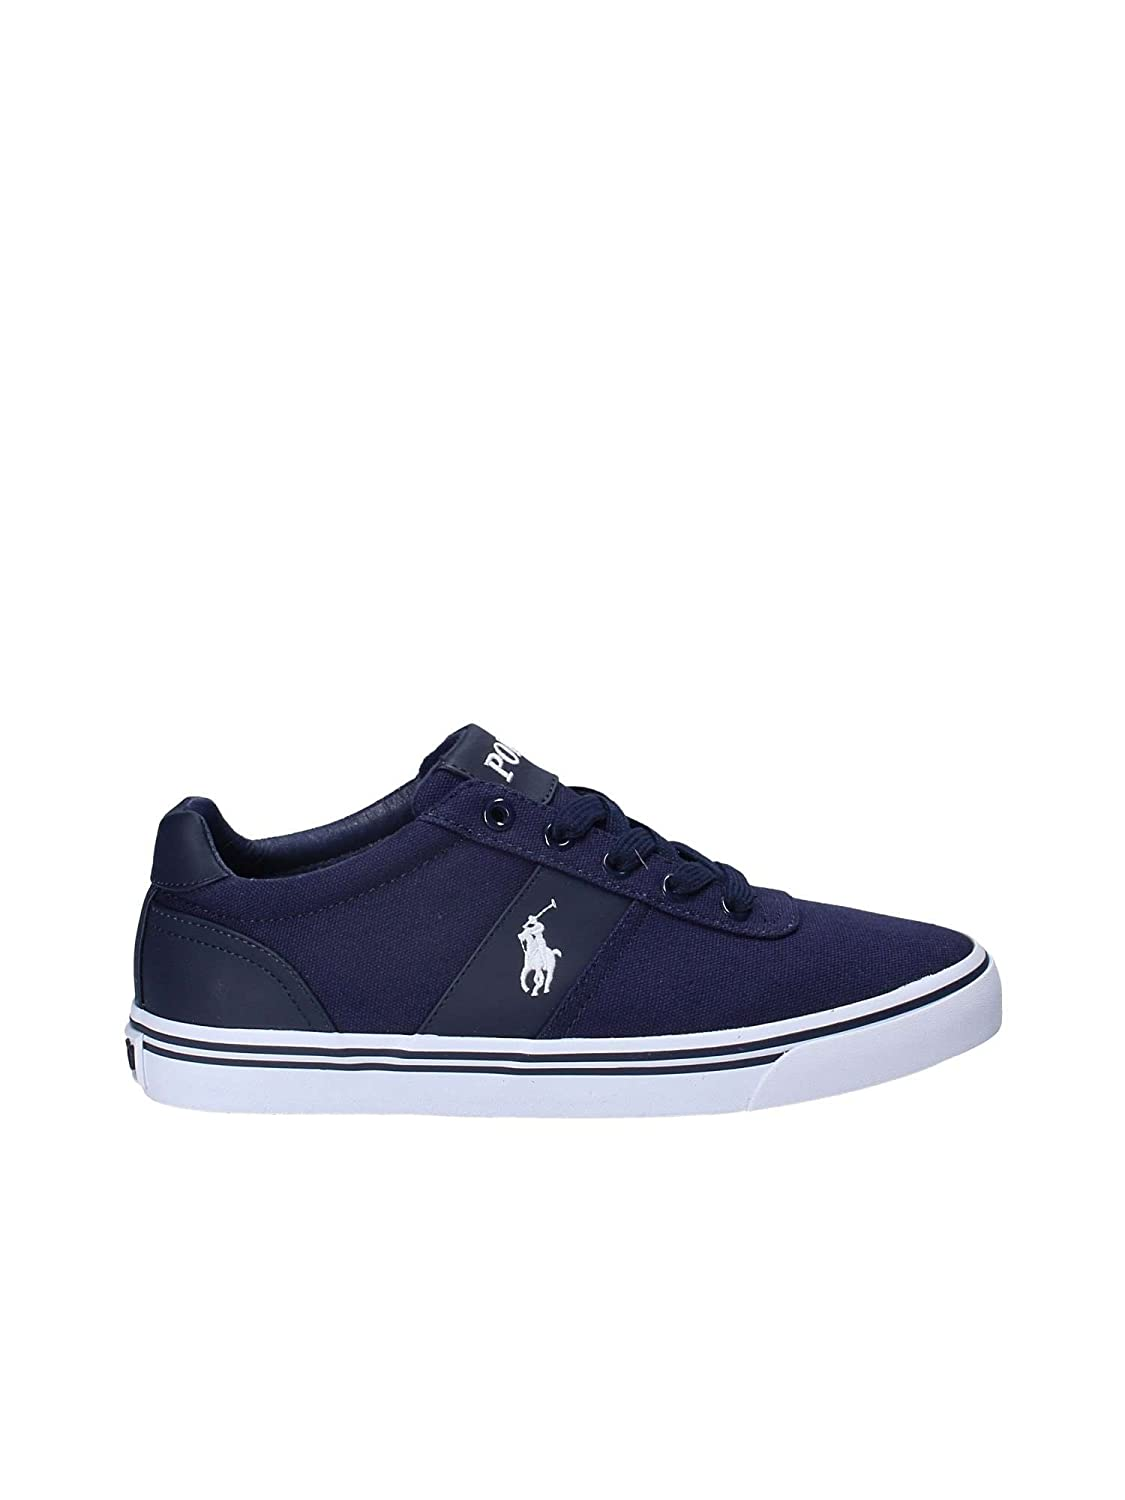 43Amazon Ralph Mode Homme Baskets Lauren Hanford Taille Polo Bleu uTc1JFK5l3